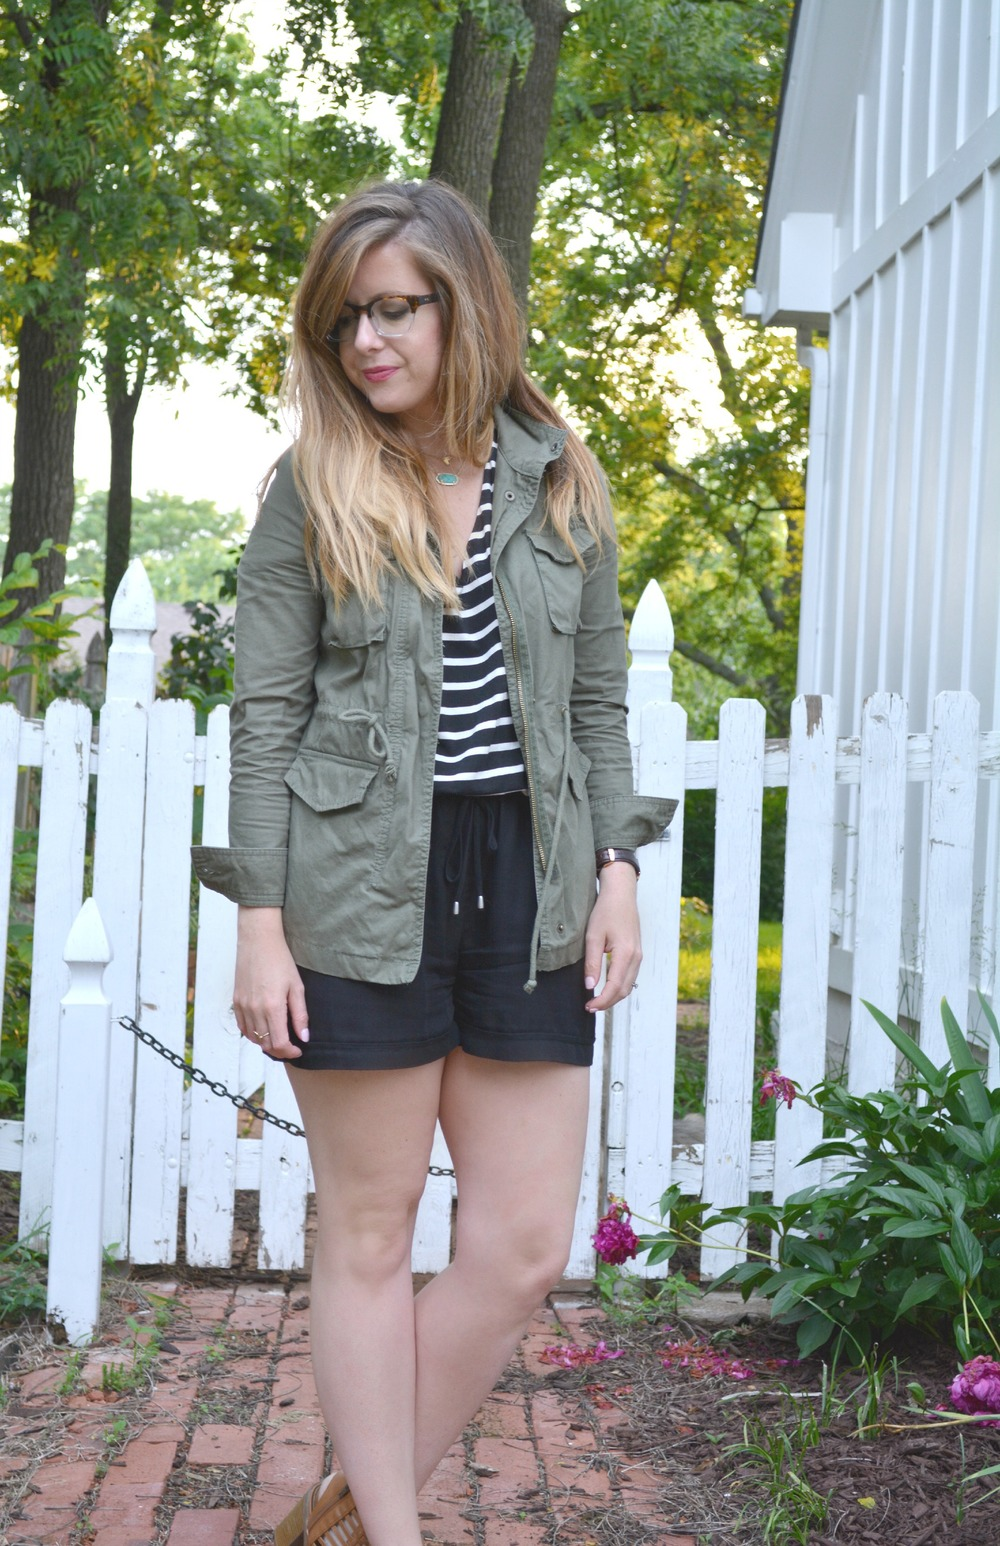 Polette eyewear, green cargo jacket, and stripe Anthropologie romper on Sophisticaited.com